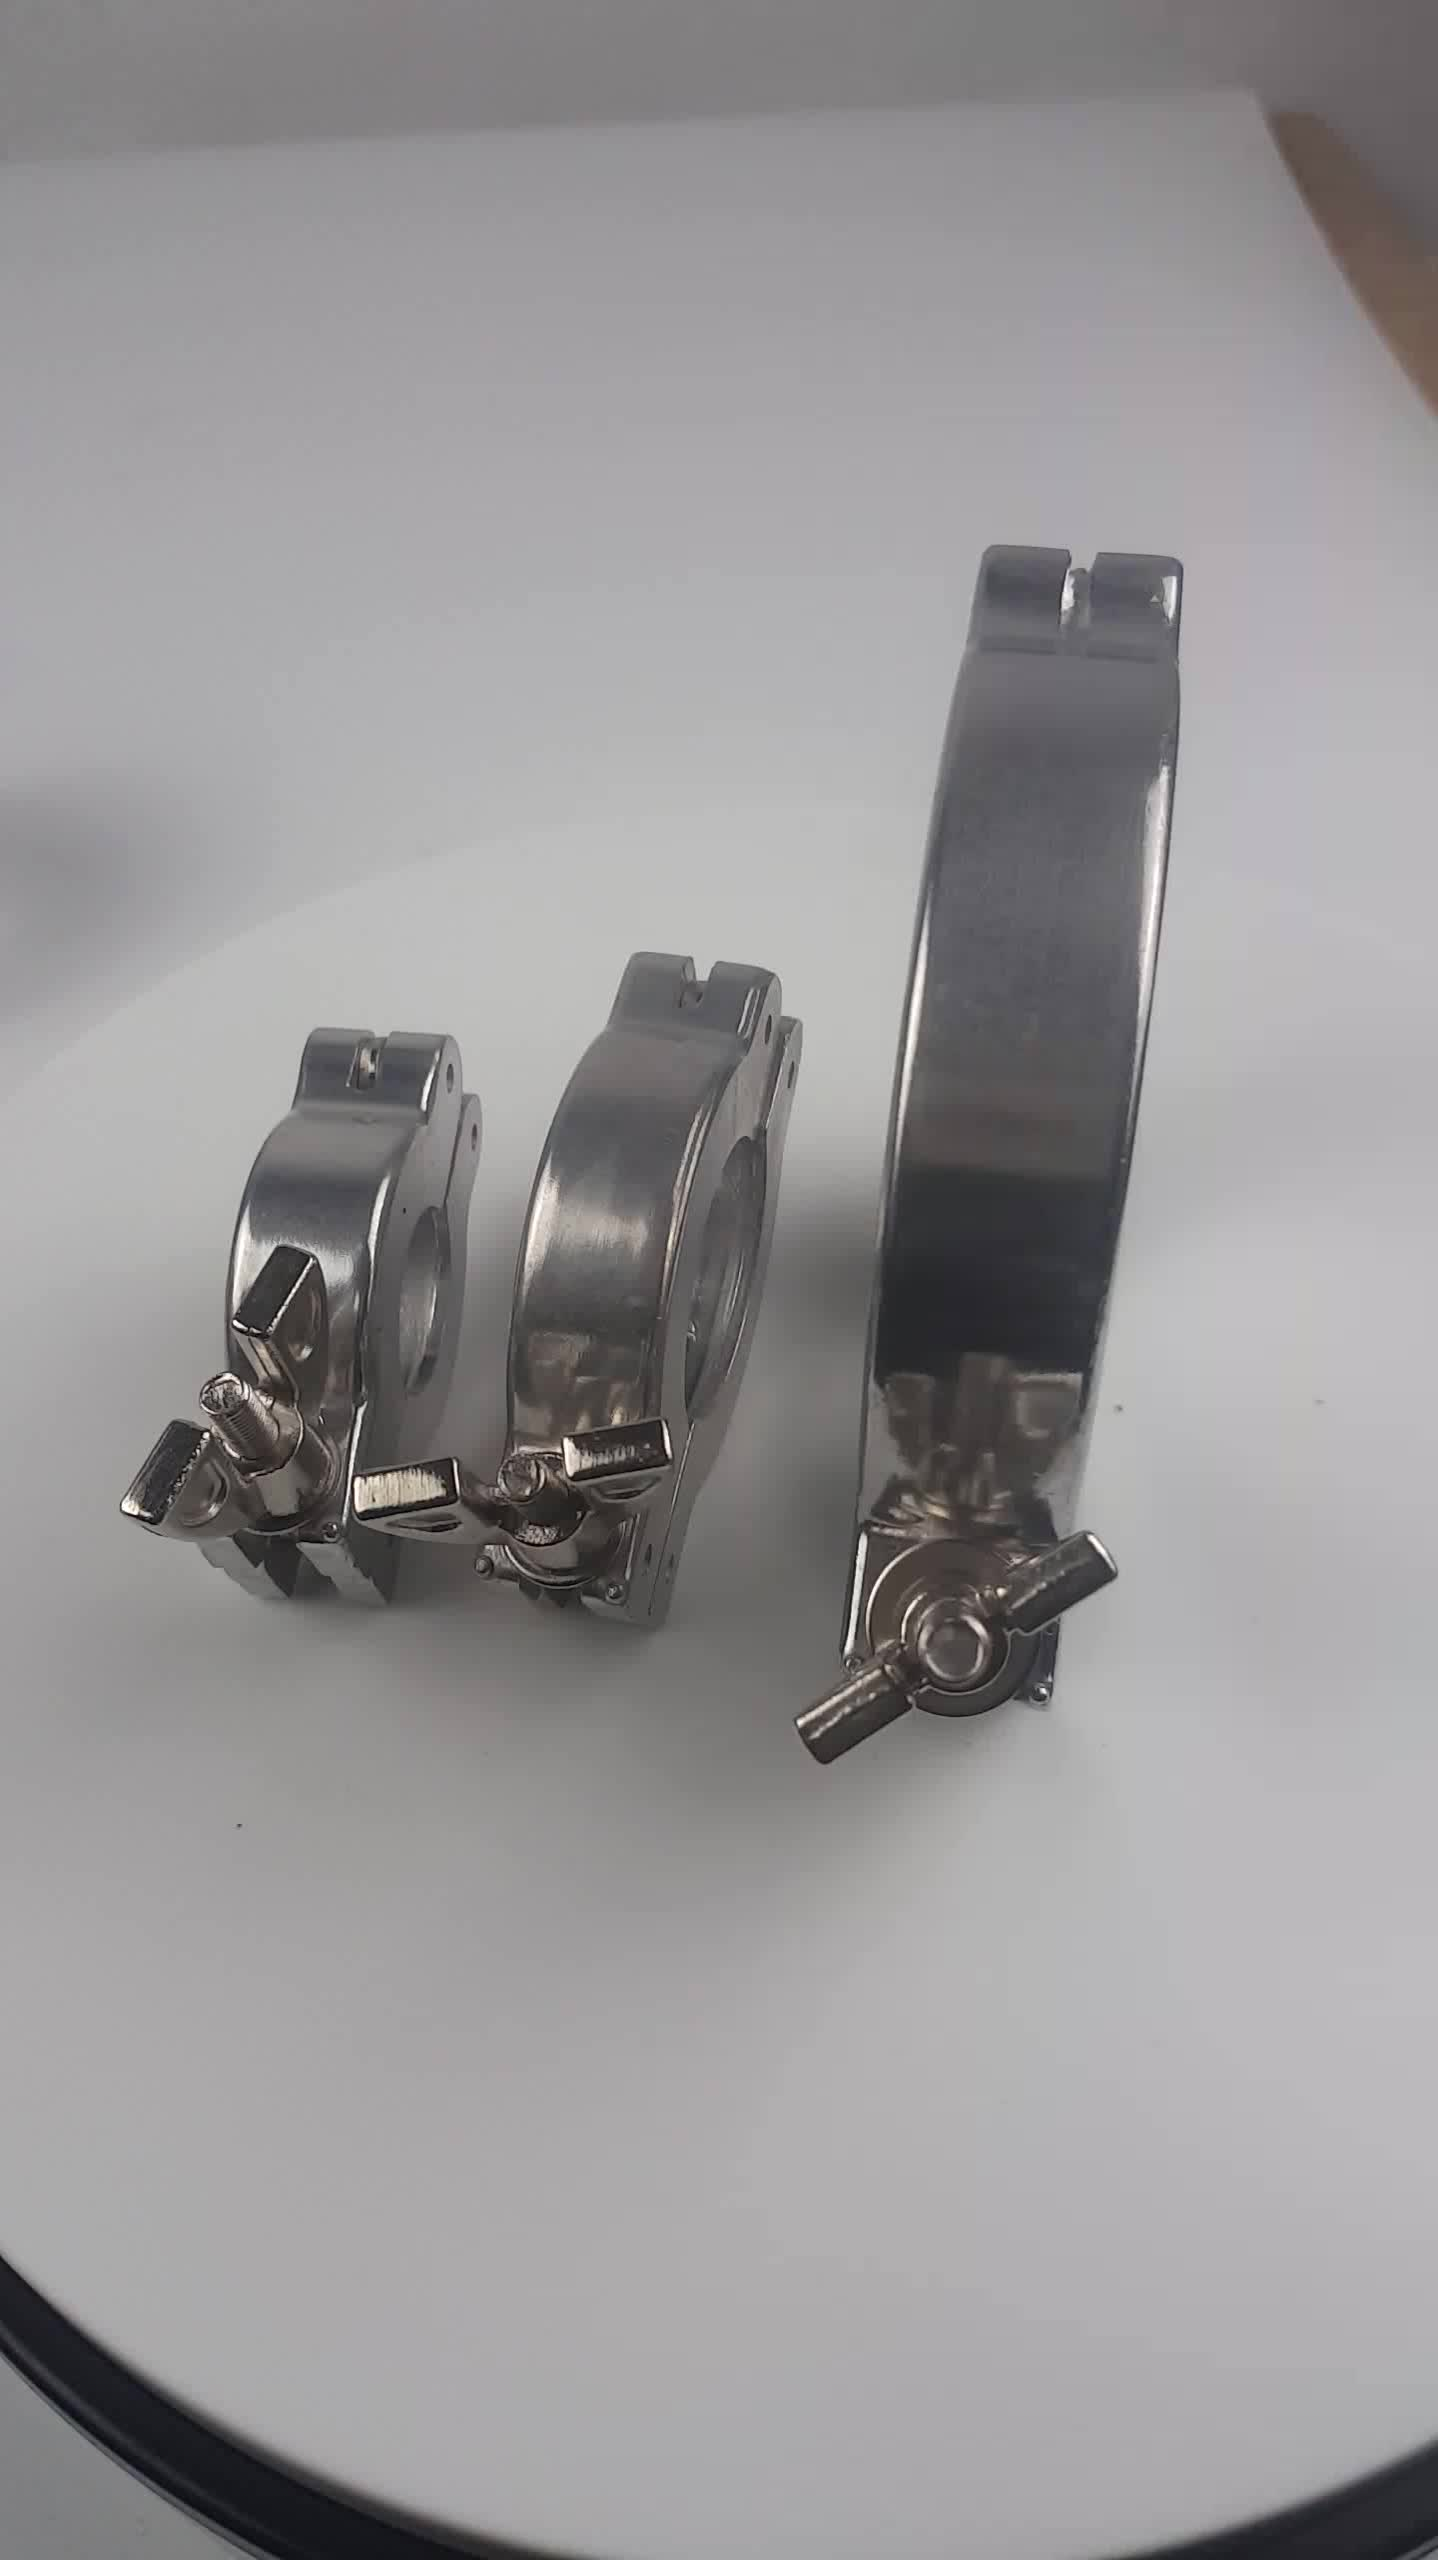 stainless steel vacuum chain kf clamp for vacuum quick fittings kf63 kf80 kf100 kf160